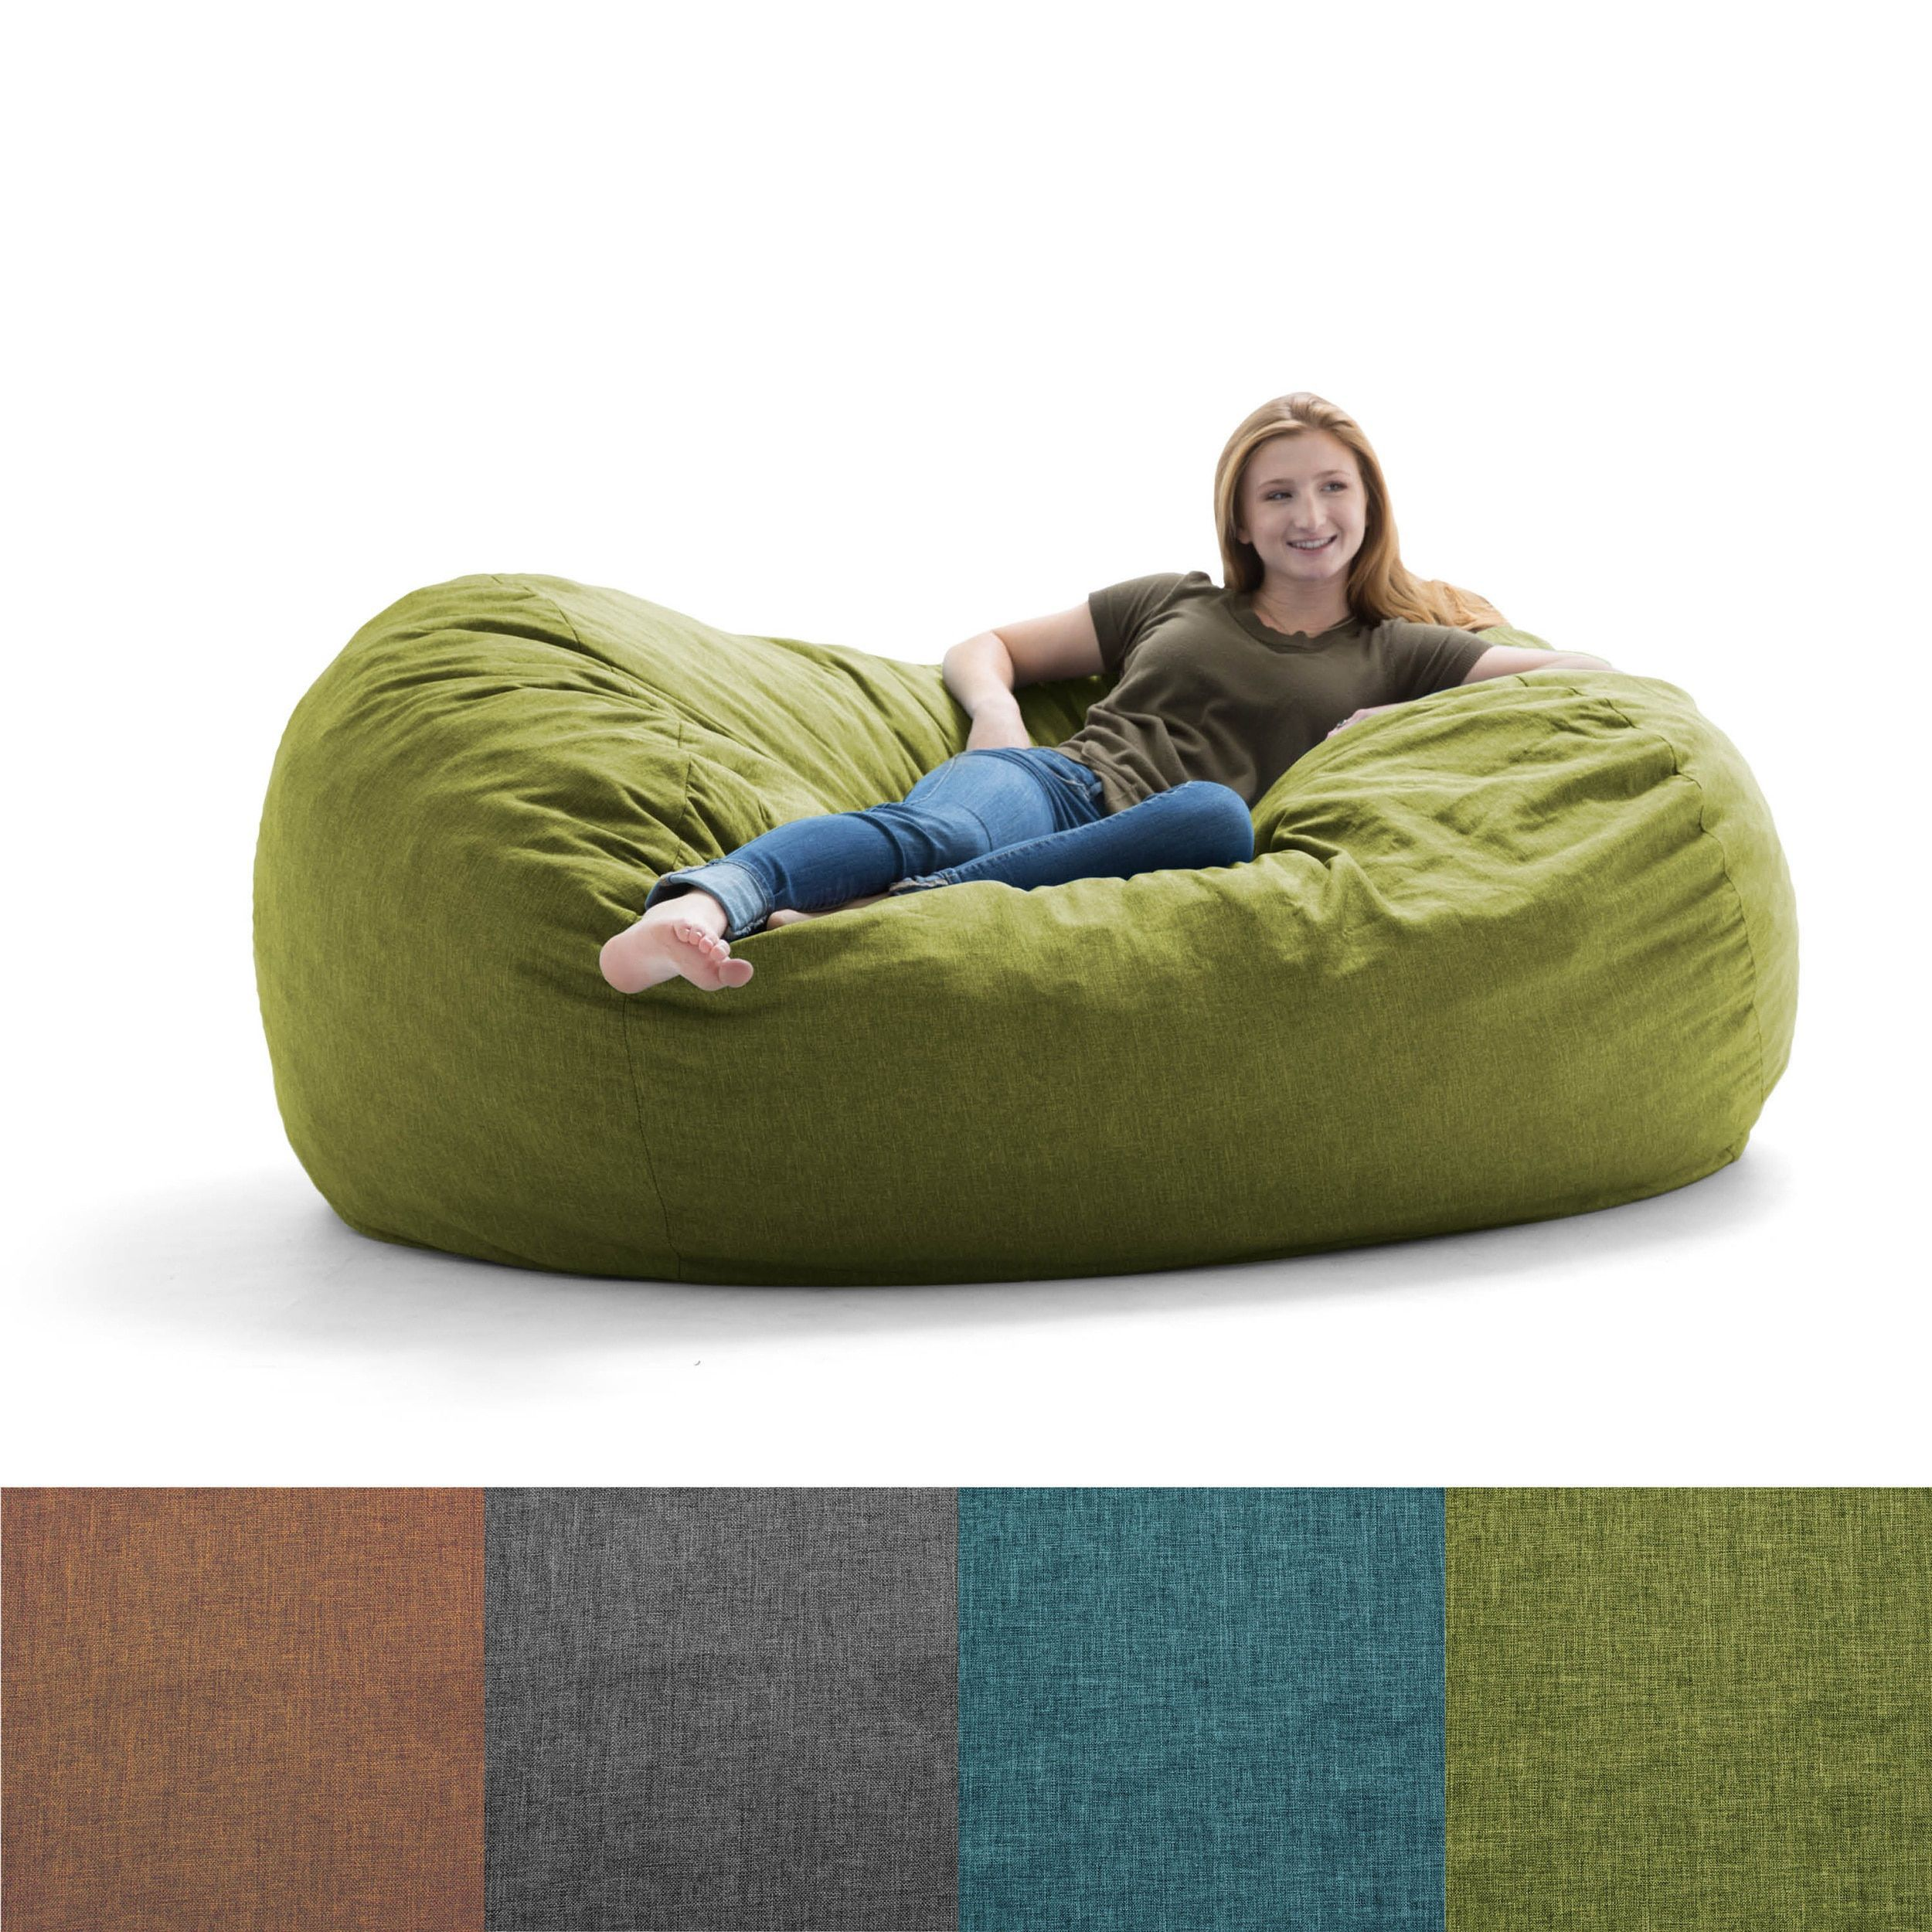 Remarkable Fufsack Big Joe Lux Solid Colore Memory Foam Bean Bag Chair Dailytribune Chair Design For Home Dailytribuneorg